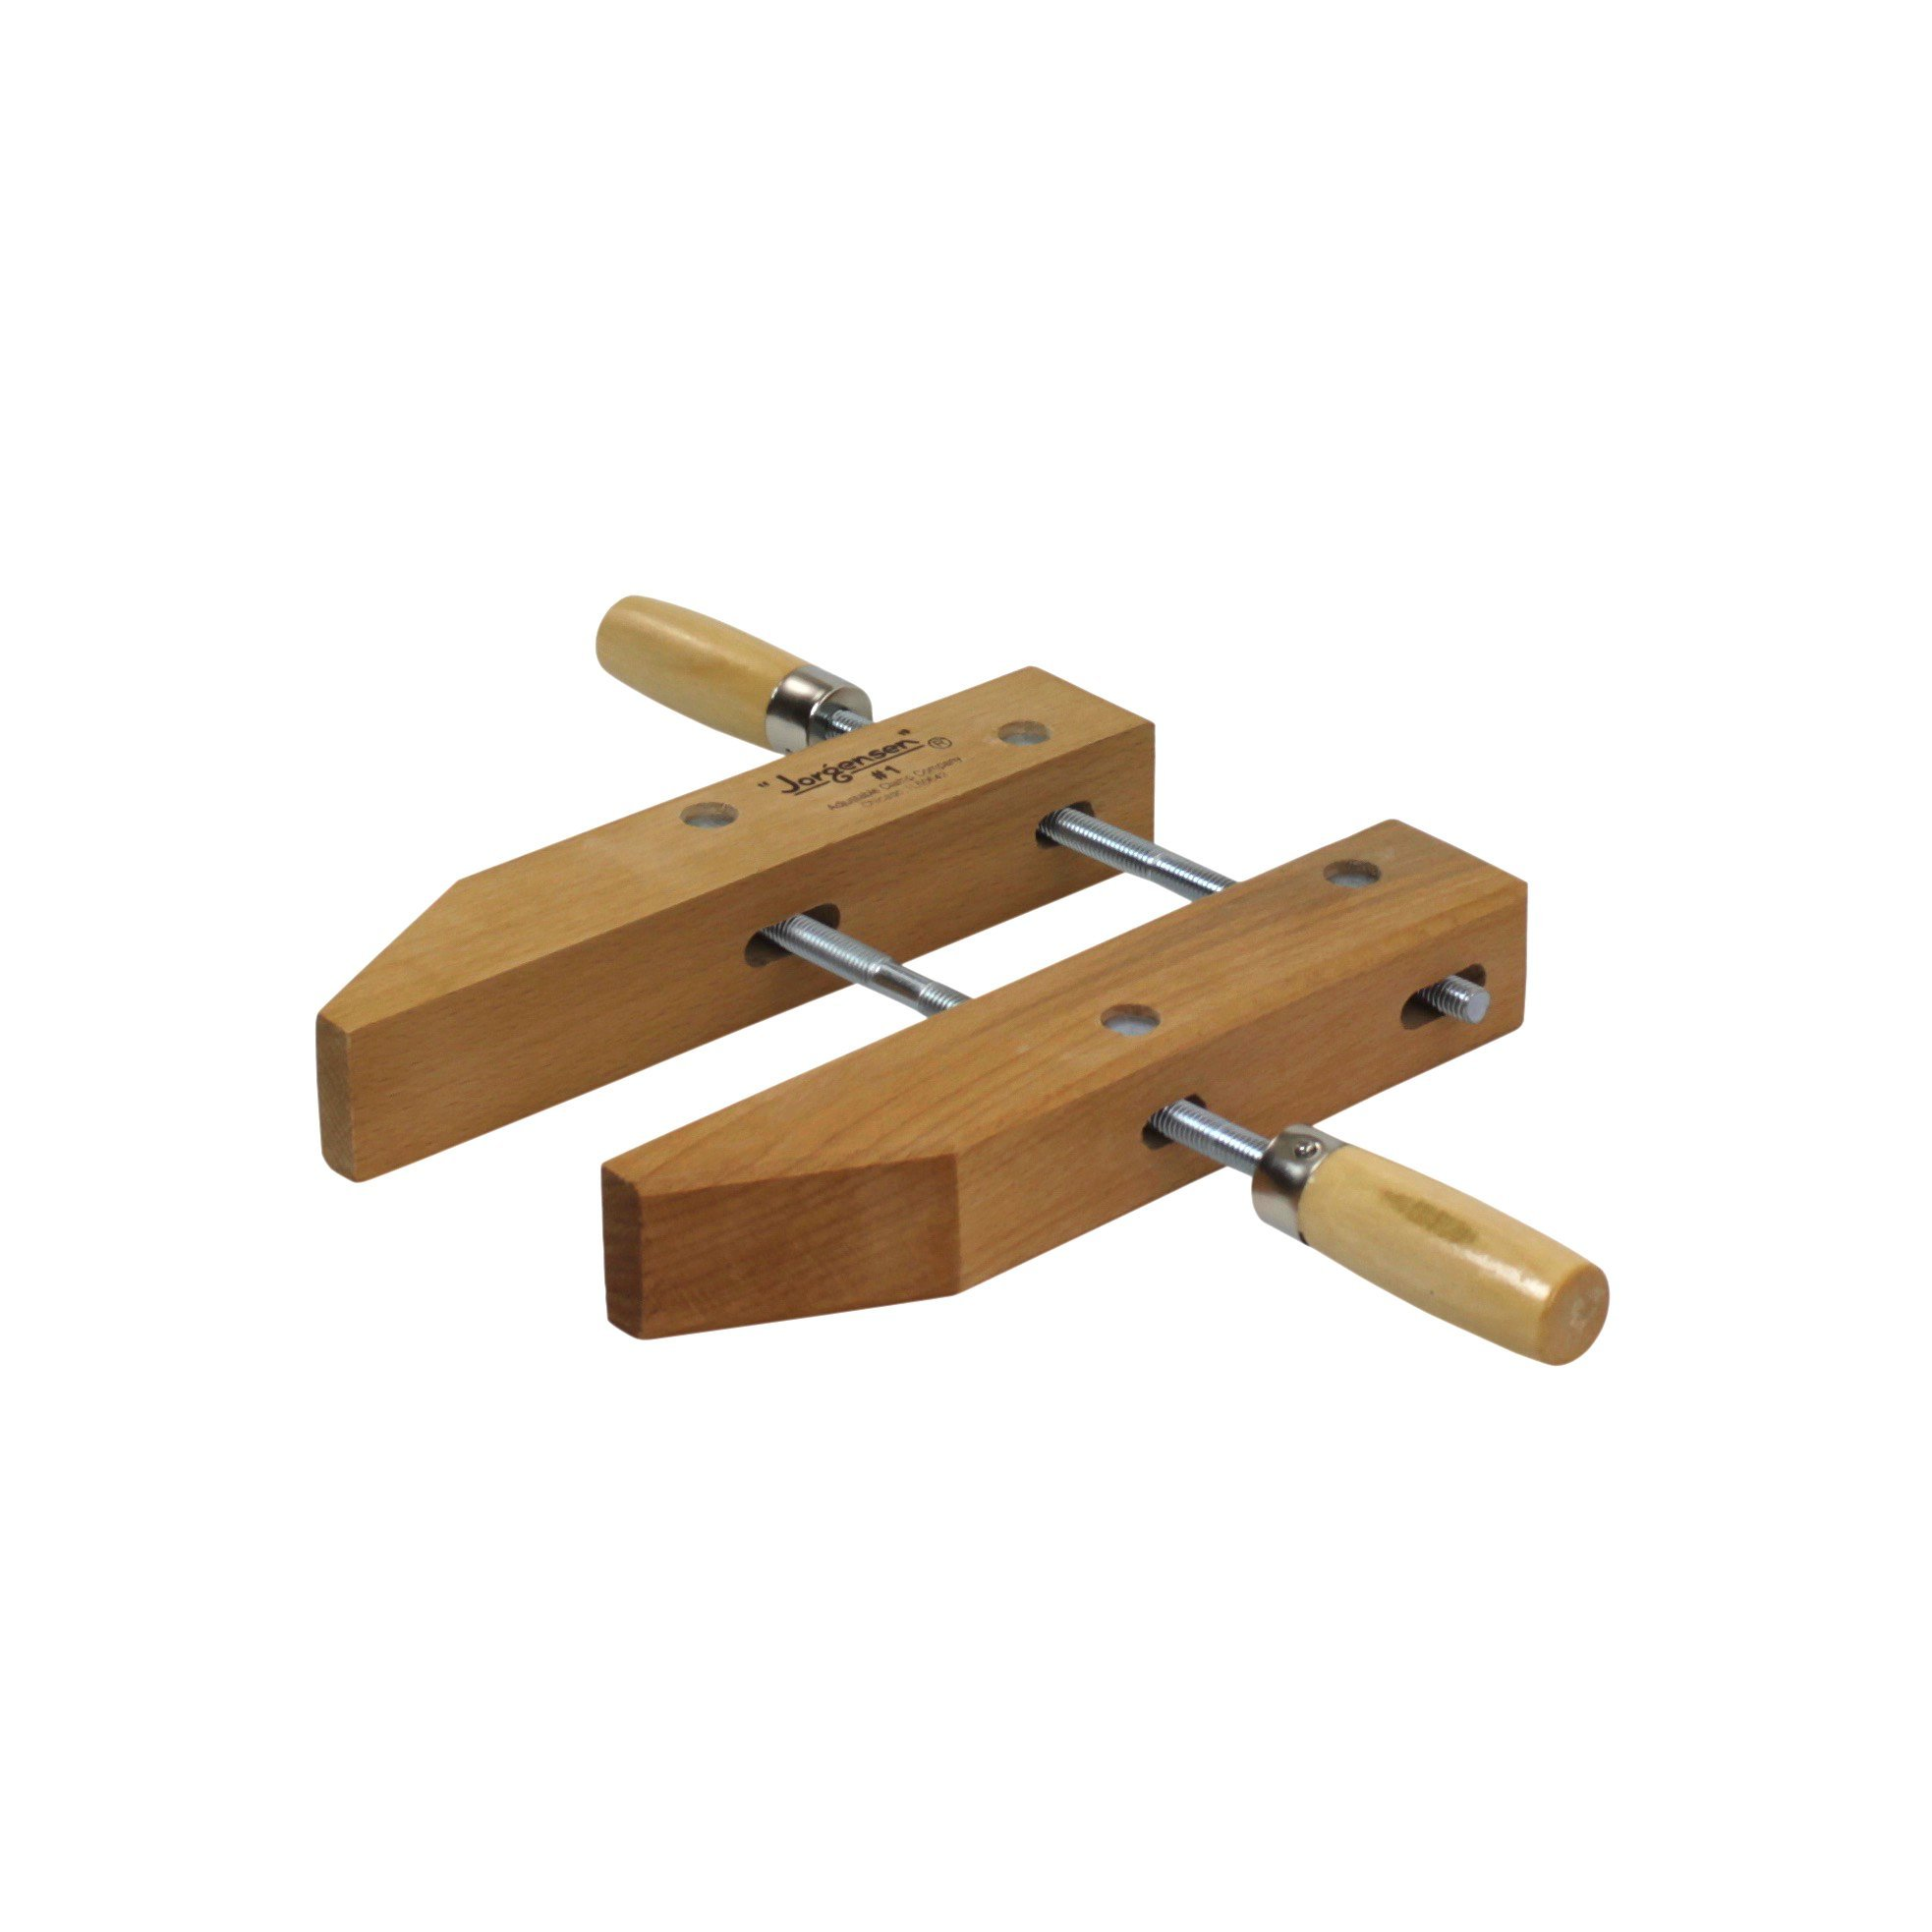 Jorgensen Size 1 6-Inch Handscrews Wood Clamp by Pony Tools (Image #2)